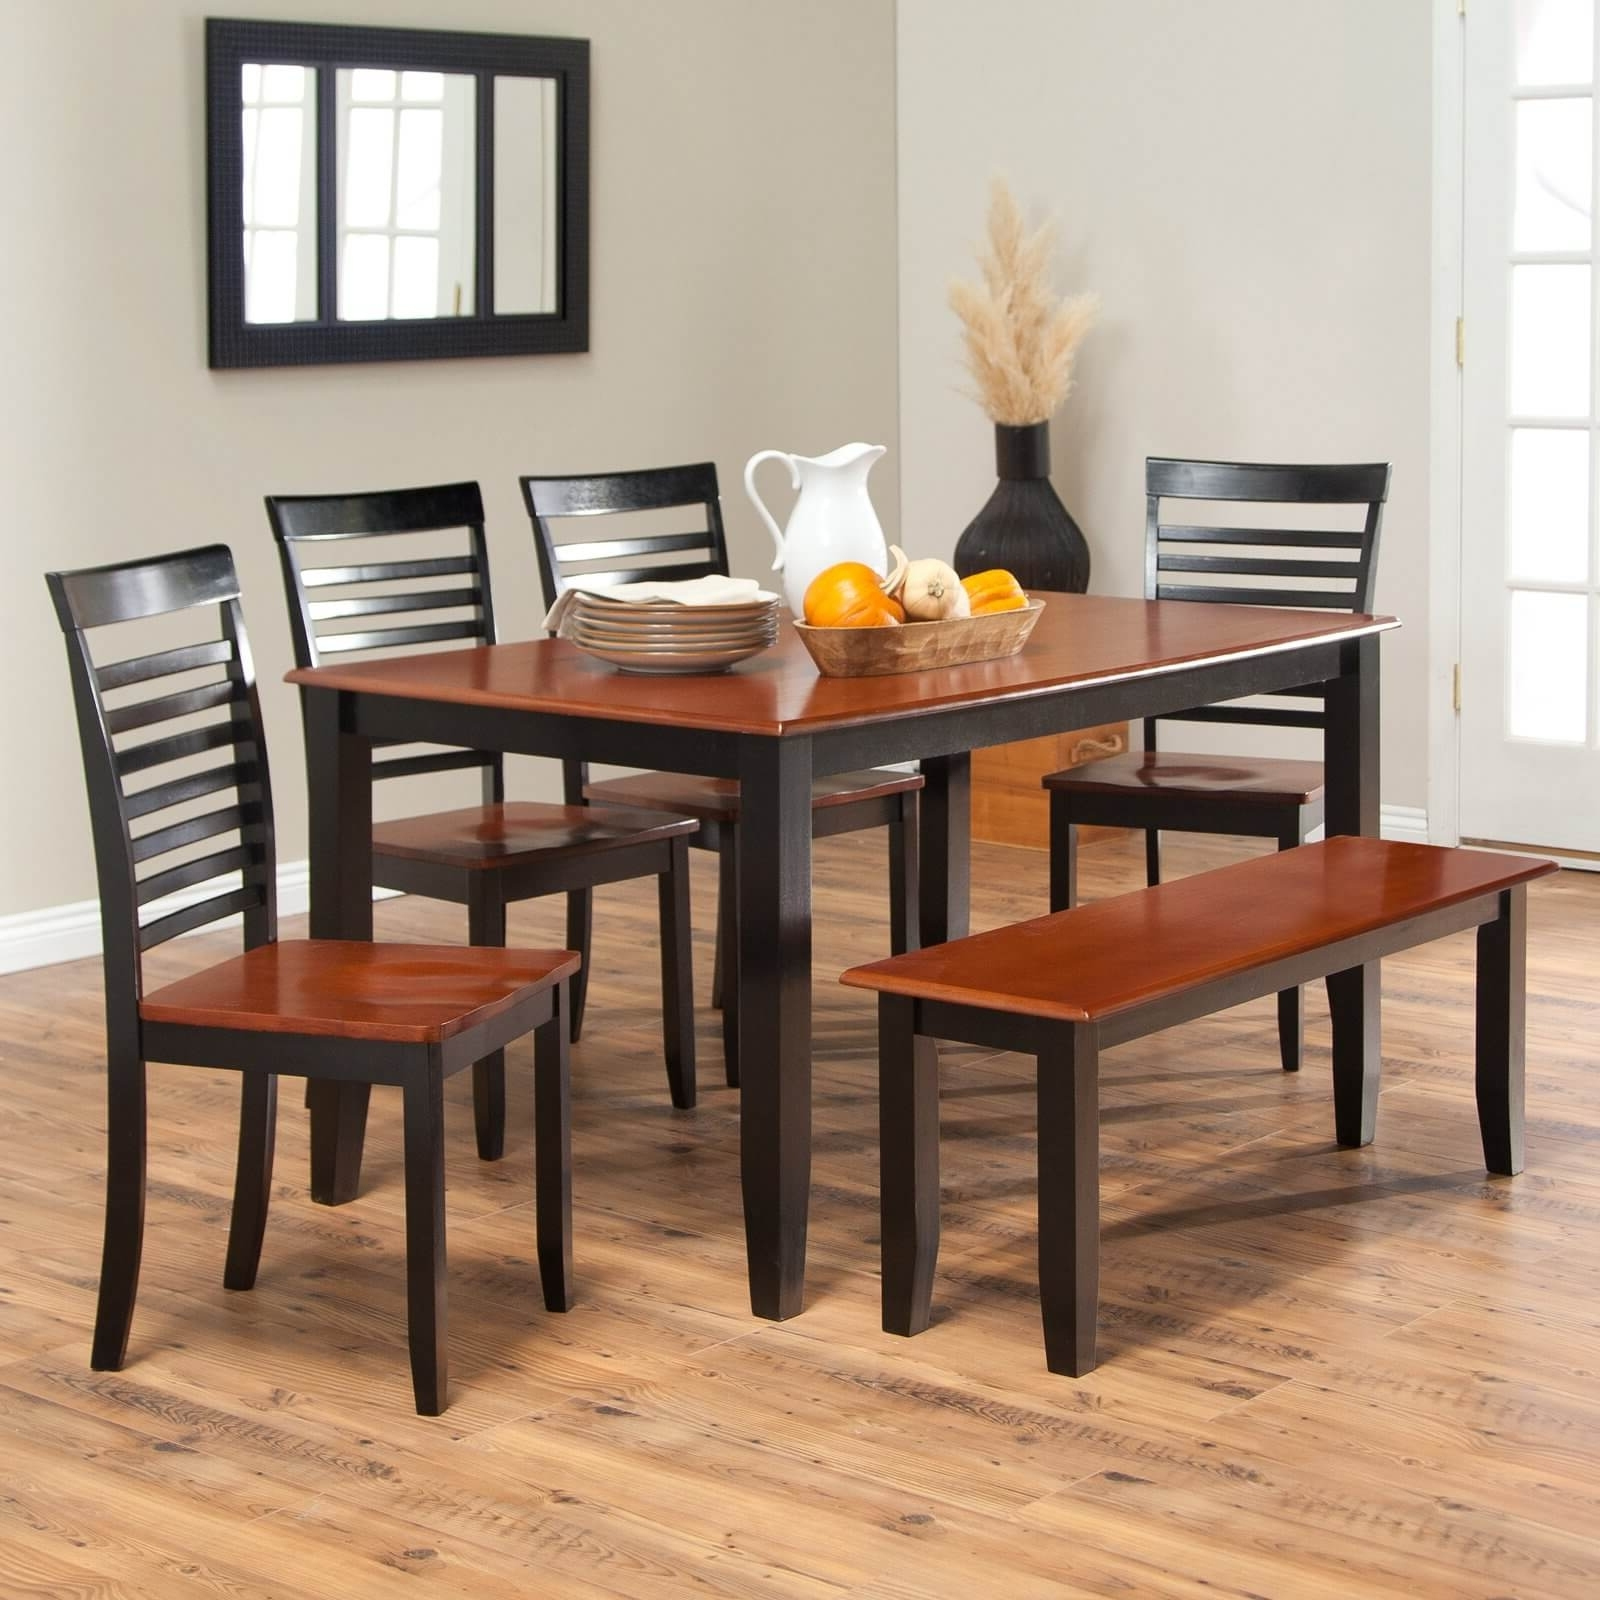 Trendy 26 Dining Room Sets (Big And Small) With Bench Seating (2018) Pertaining To Cheap Dining Room Chairs (View 9 of 25)